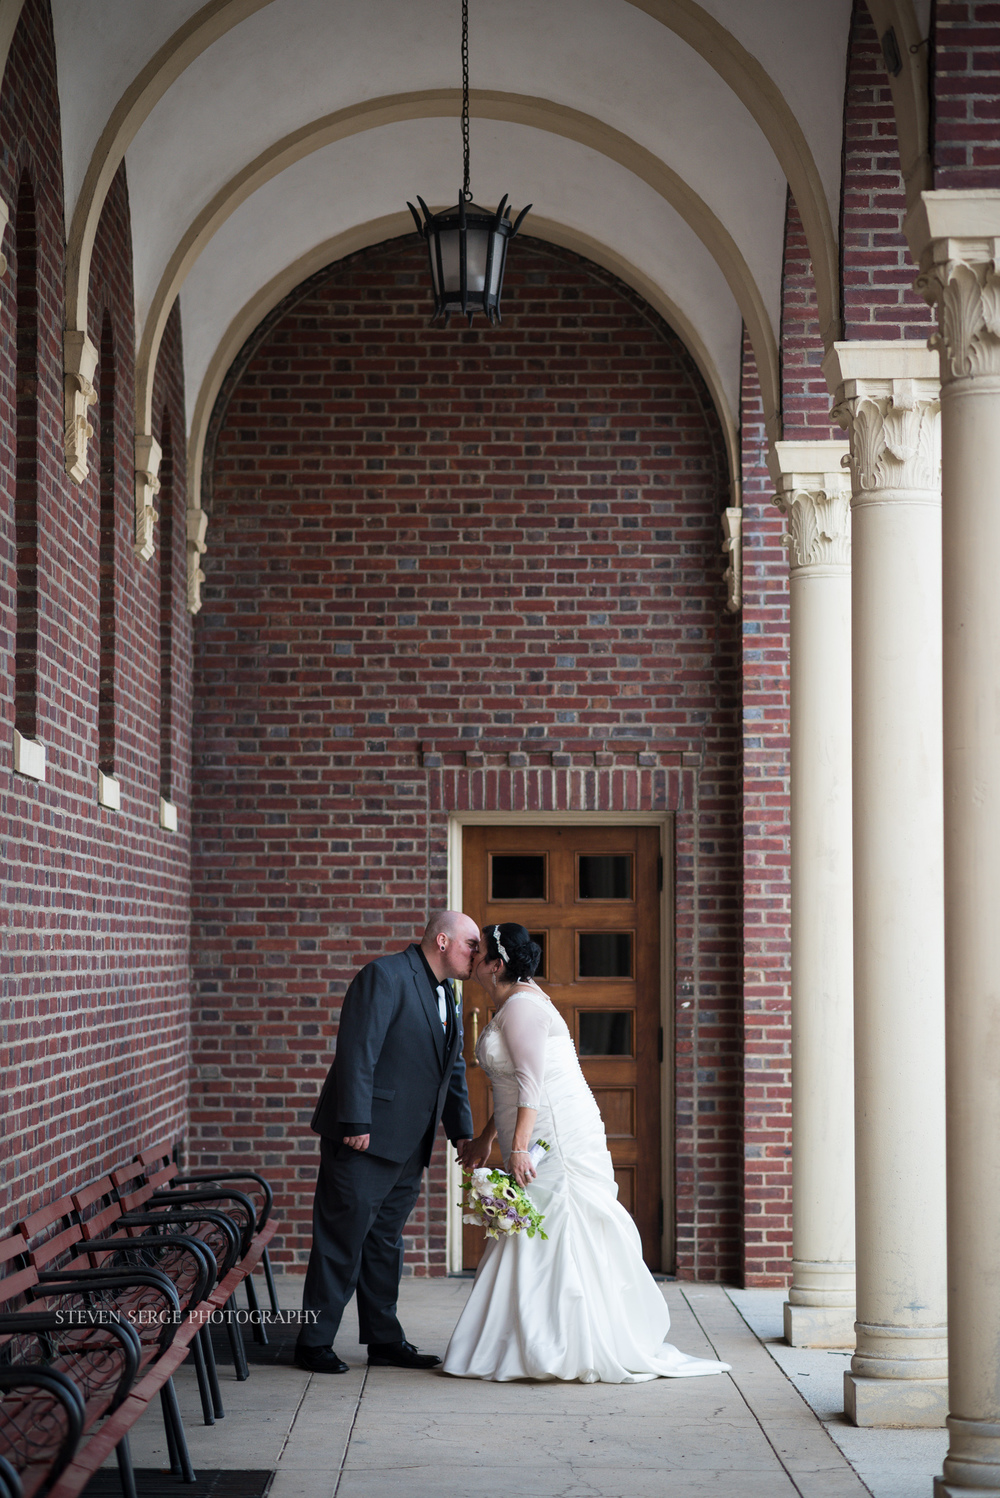 Scranton-wedding-photographer-fiorellis-steven-serge-24.jpg